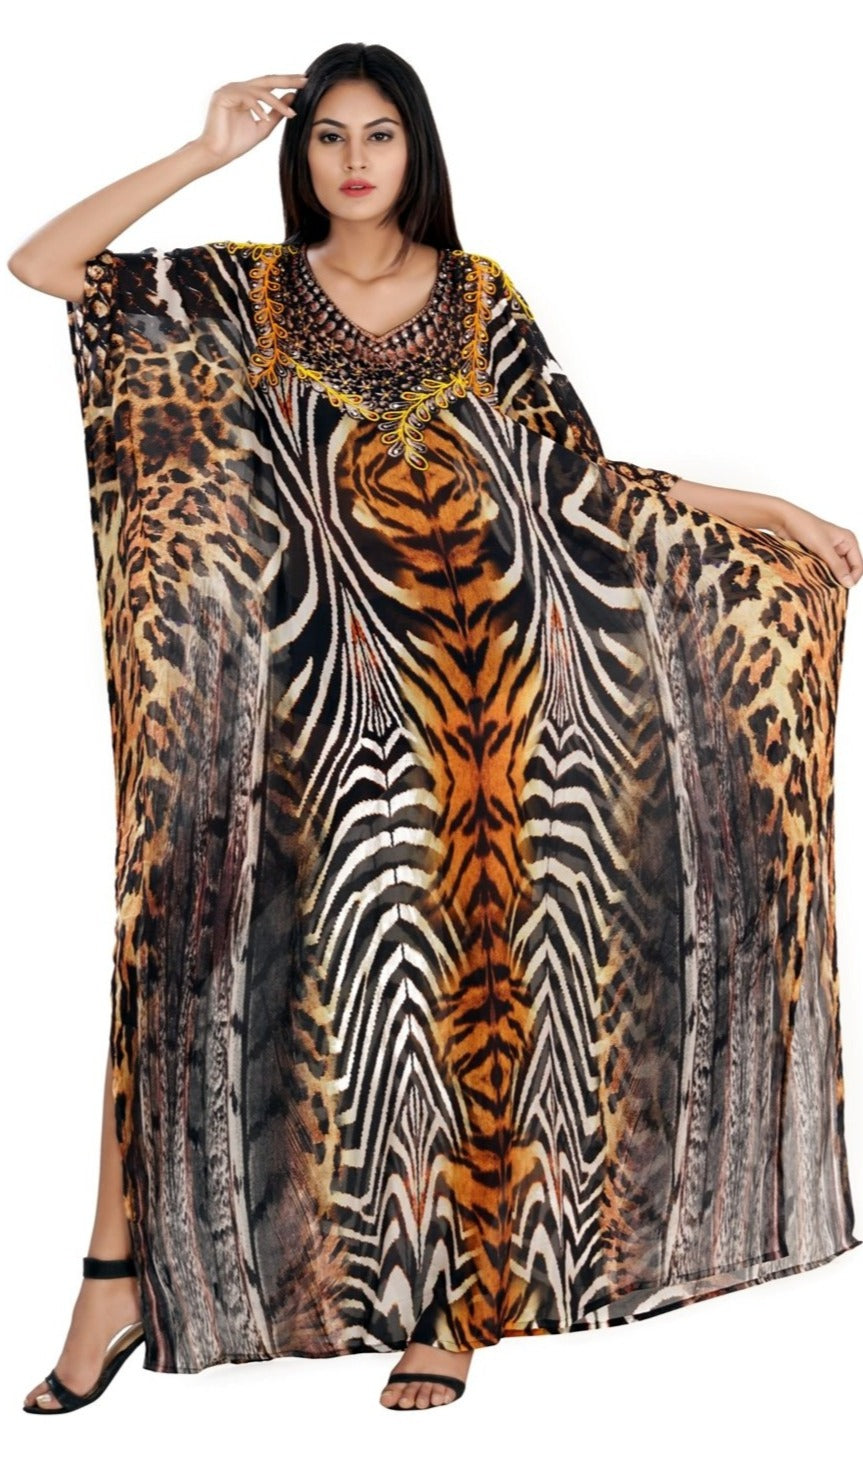 Affordable kaftans